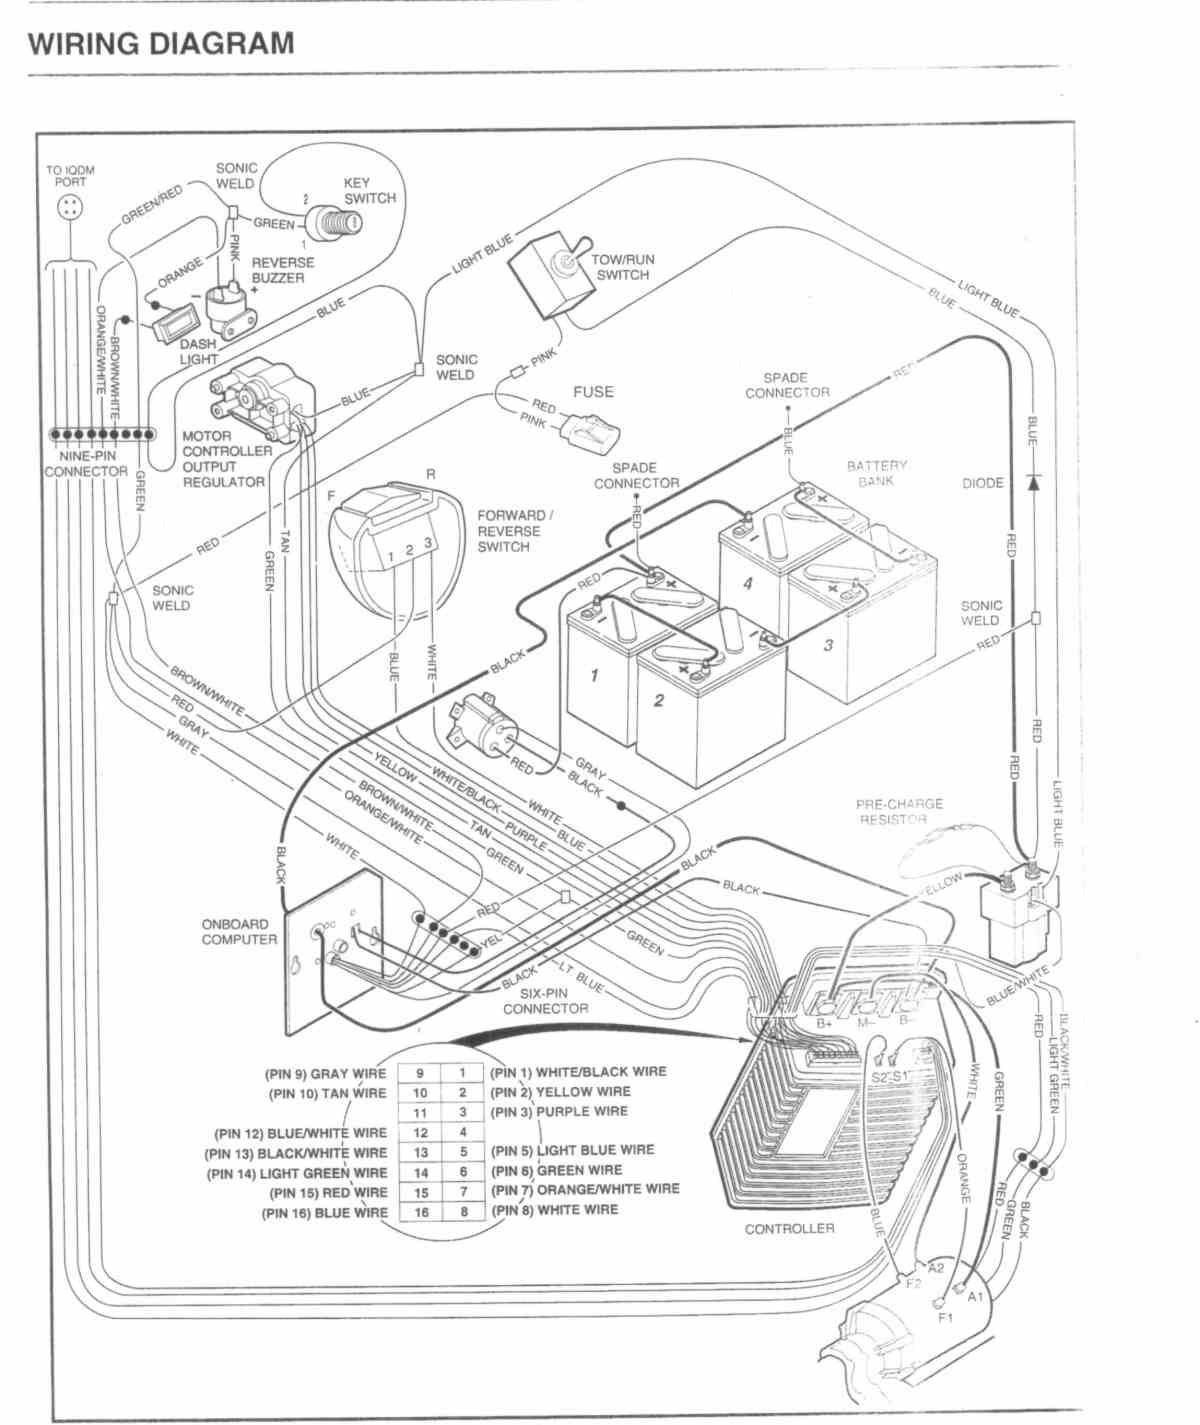 hight resolution of 2008 club car wiring diagram wiring diagram general home 2008 club car wiring diagram